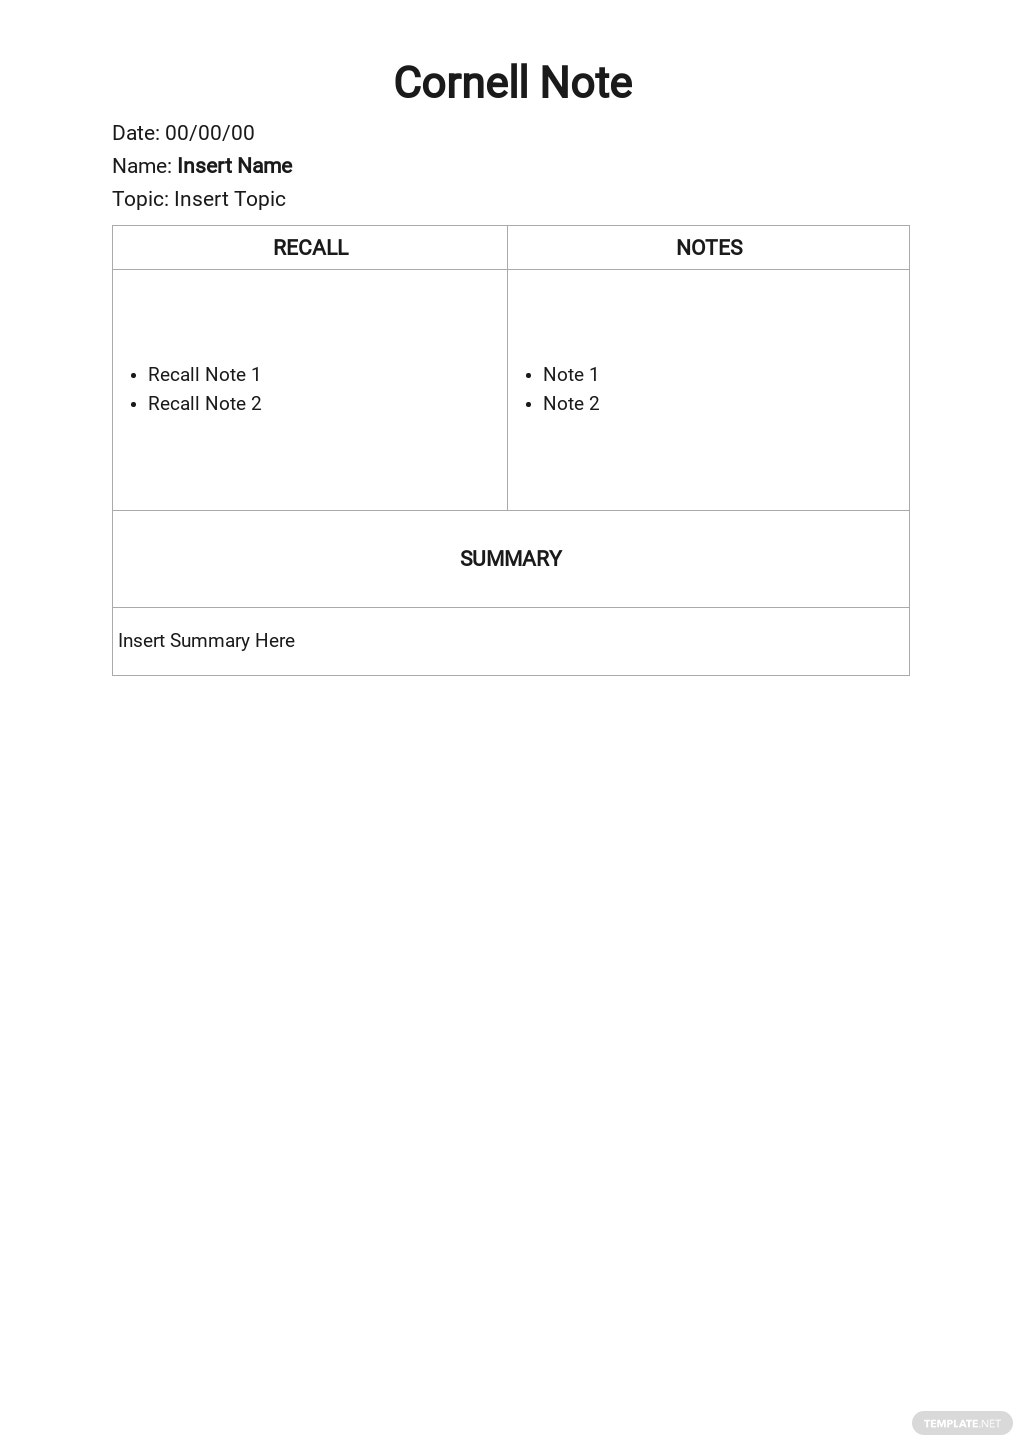 Free Blank Cornell Notes Template.jpe